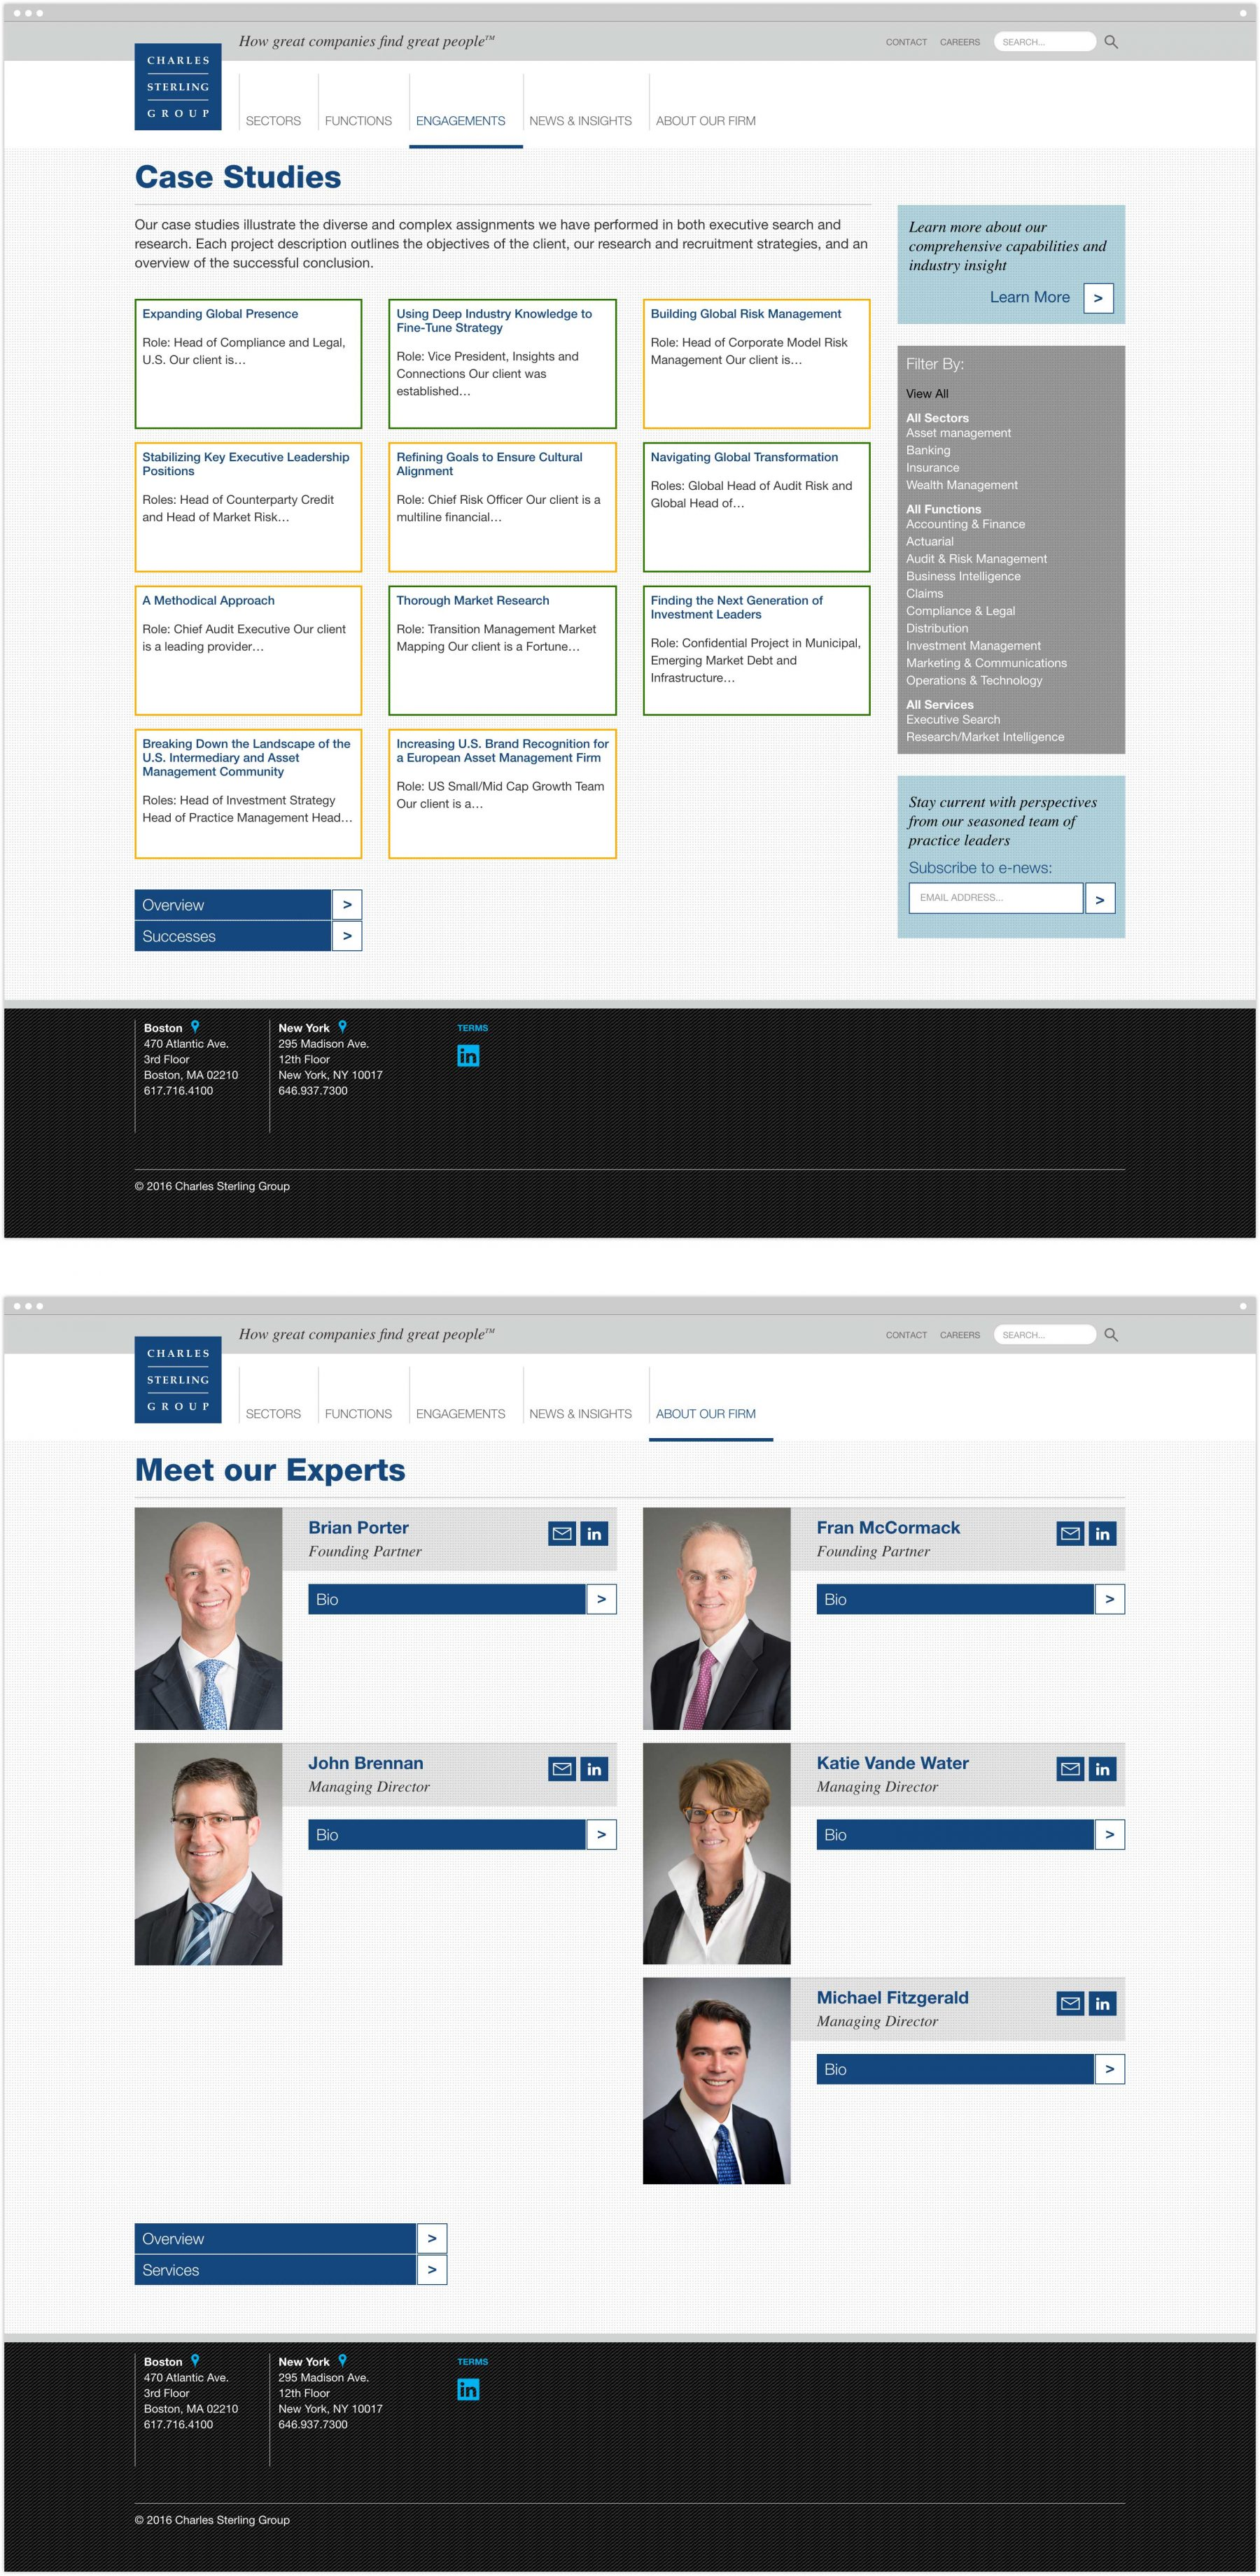 Case Studies and Meet Our Experts interior pages